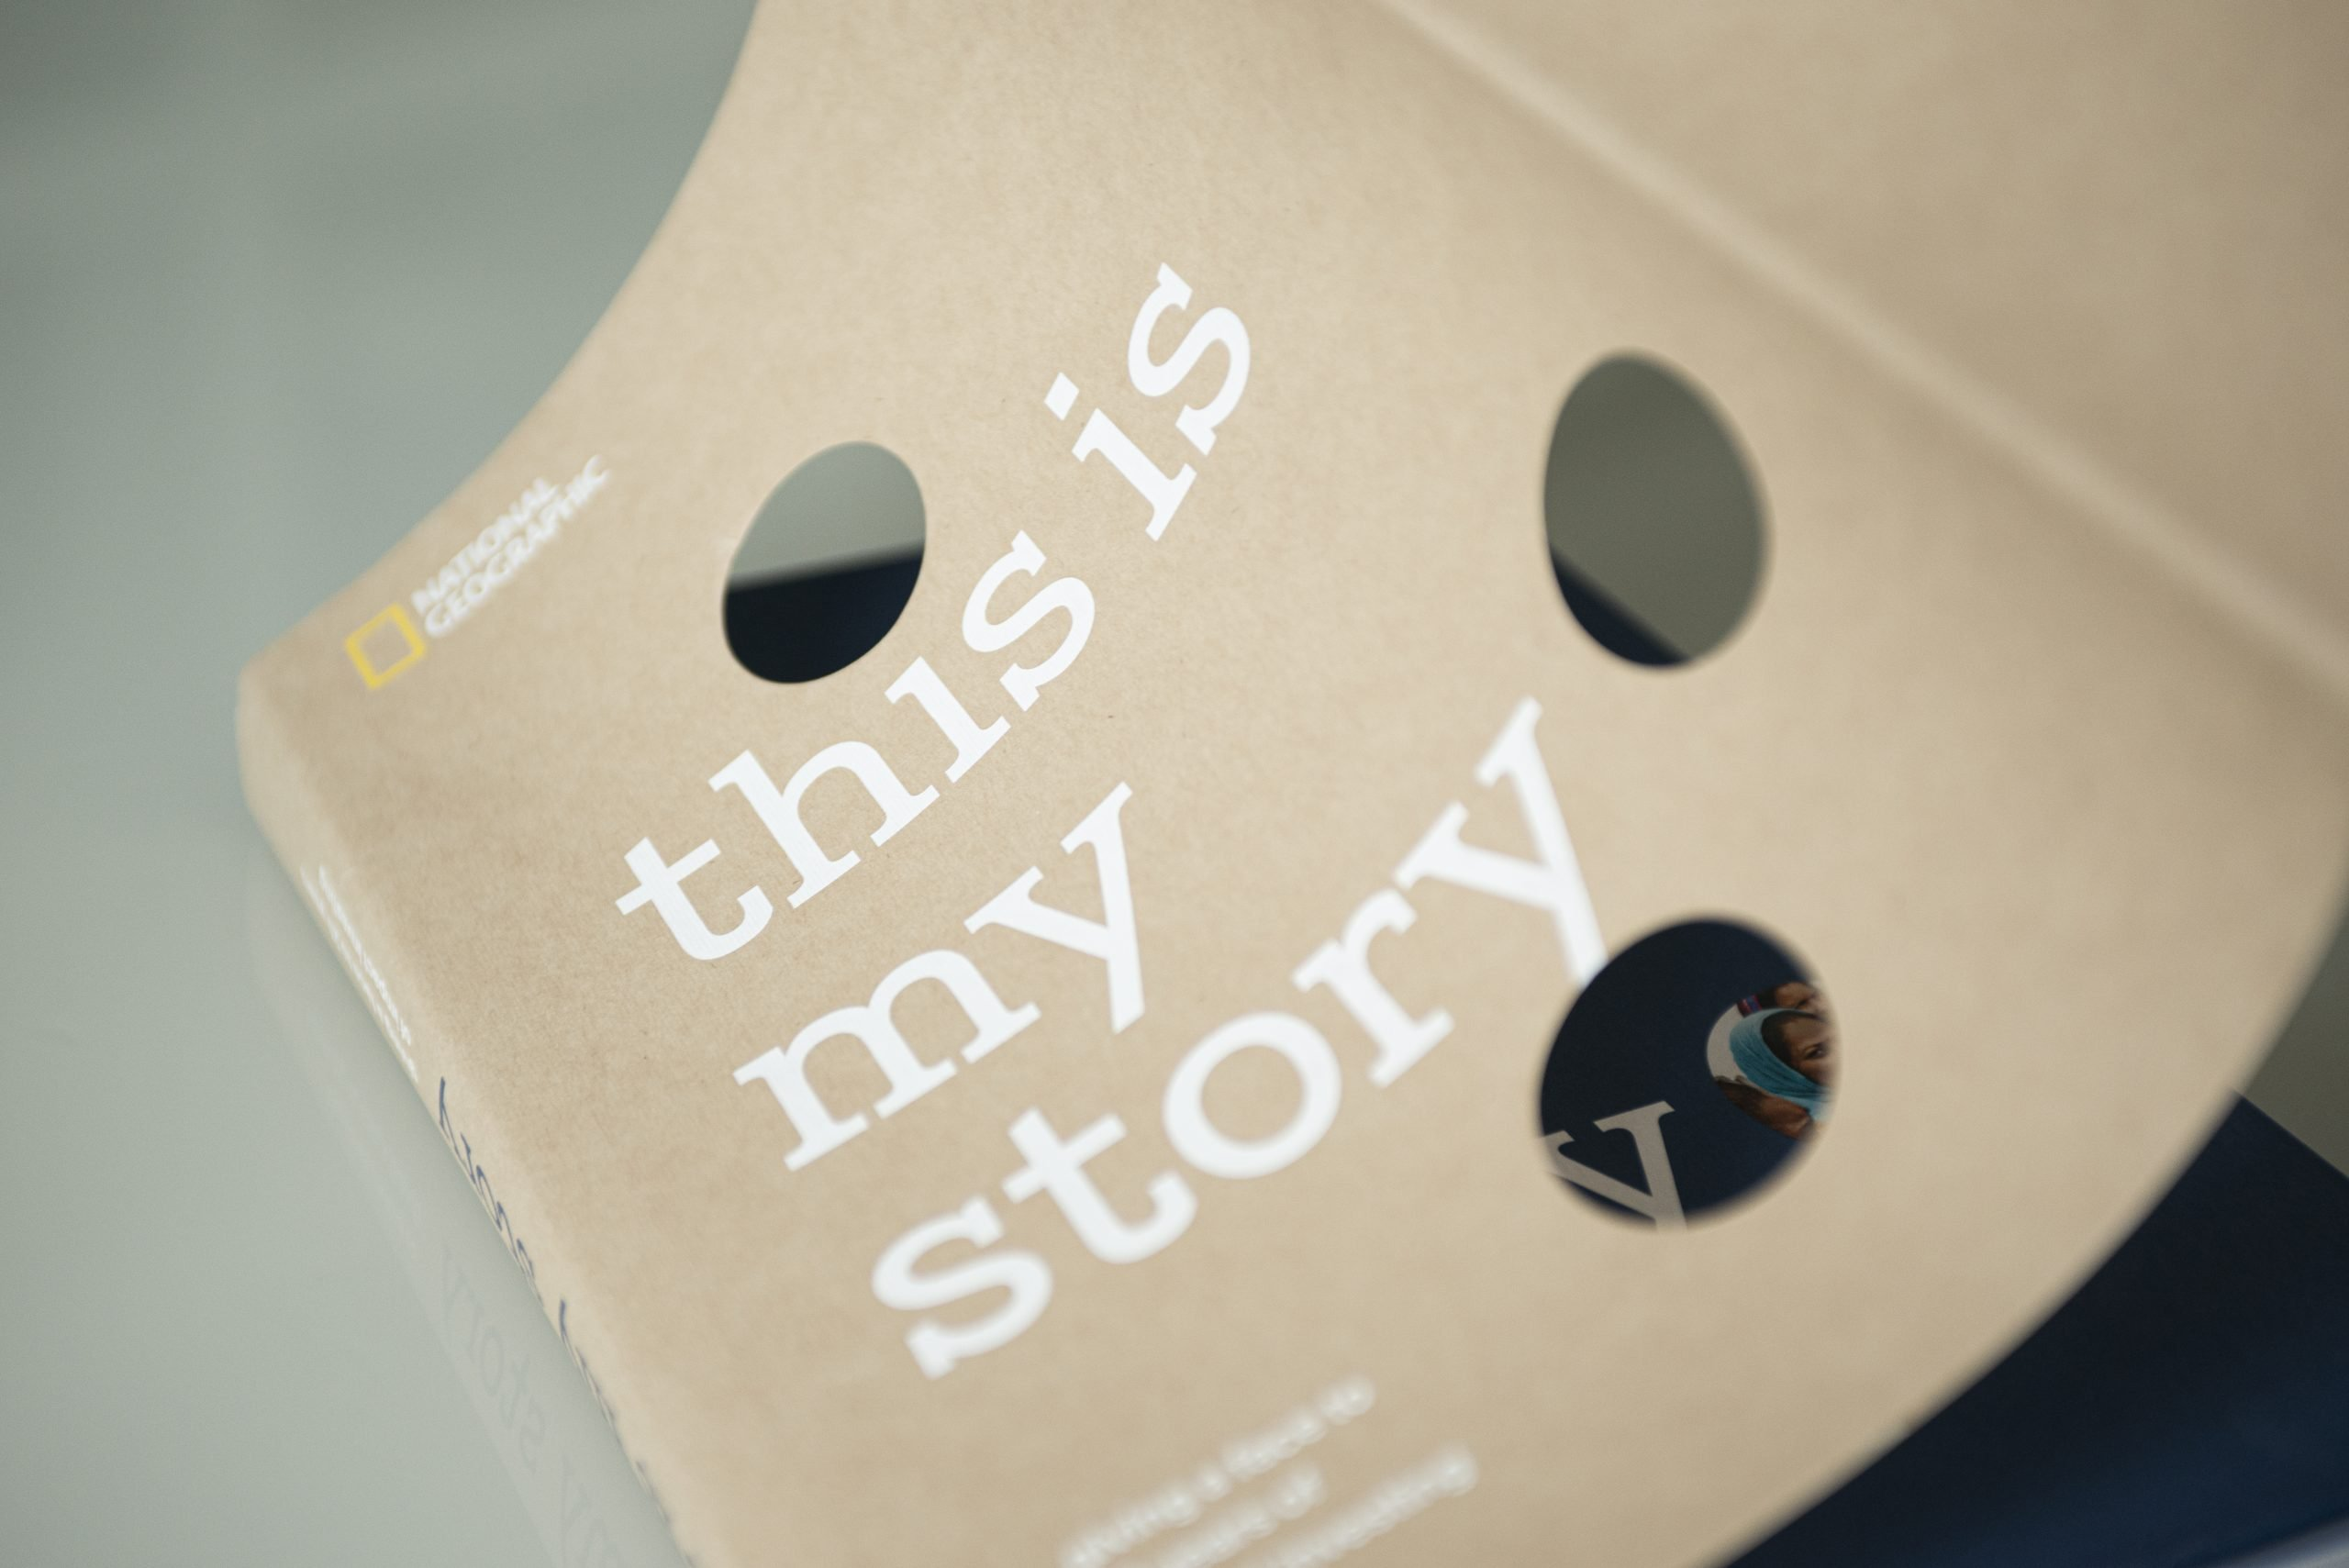 This is my story sovraccoperta